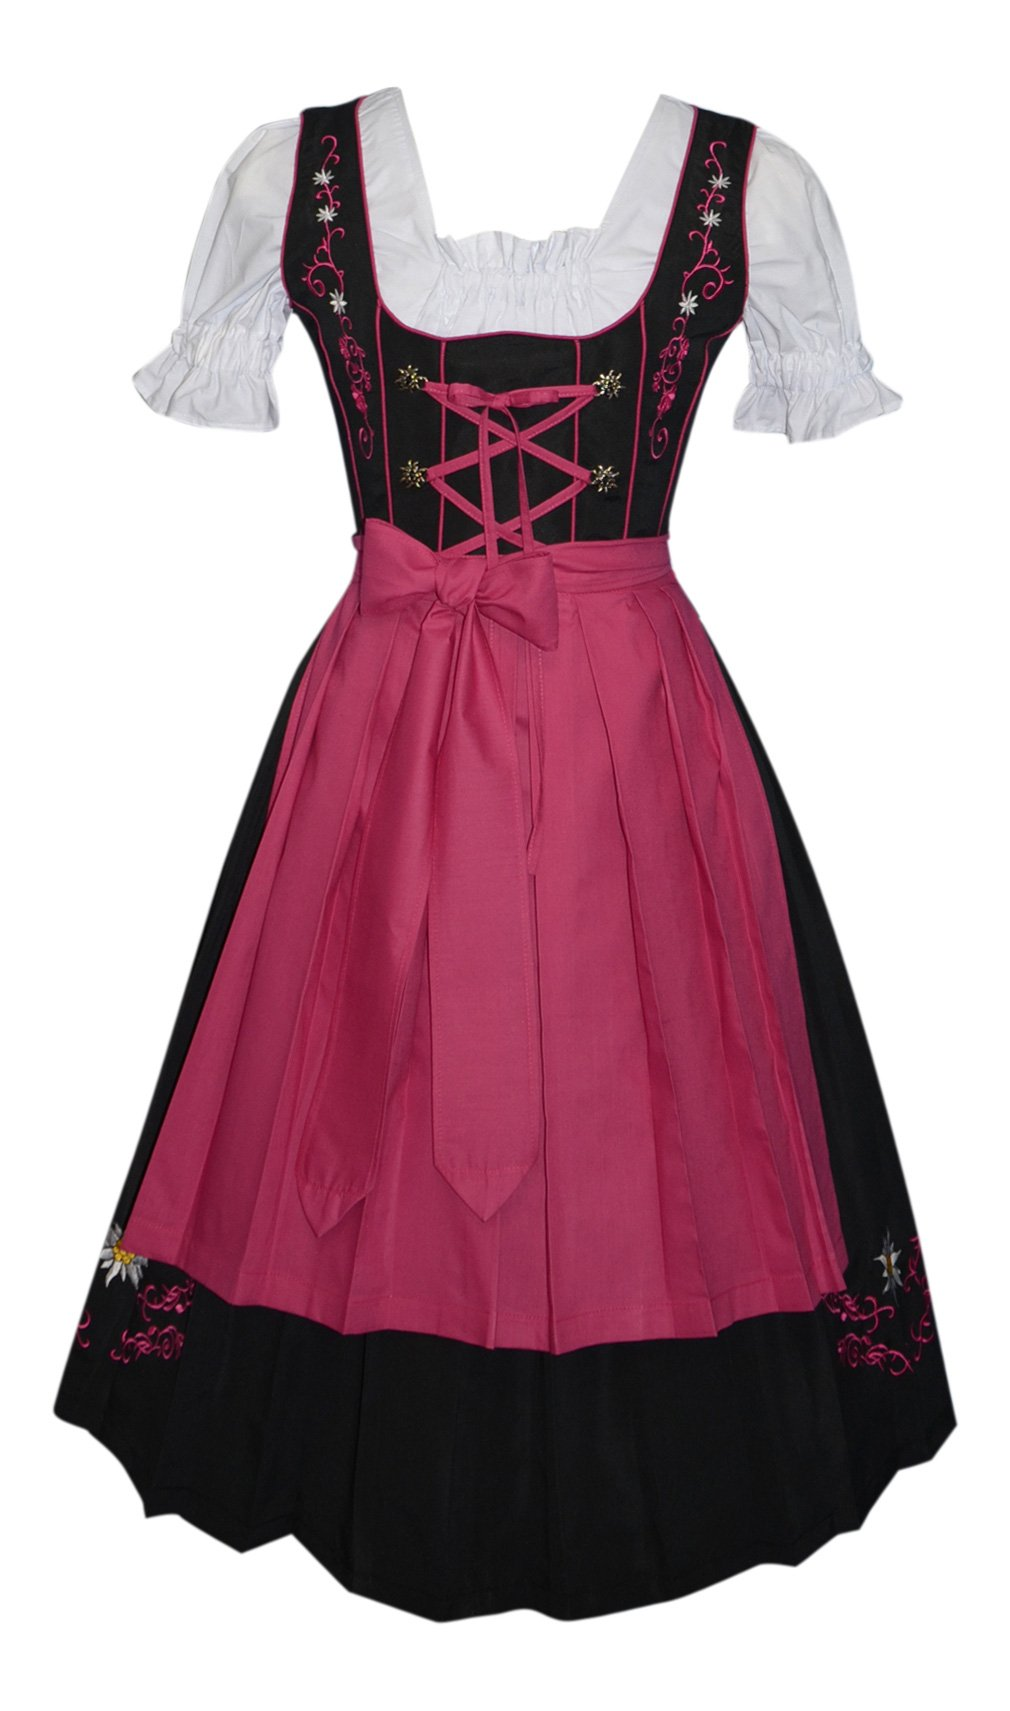 3-Piece Long German Party Oktoberfest Dirndl Dress Black & Pink (14) by Edelweiss Creek (Image #1)